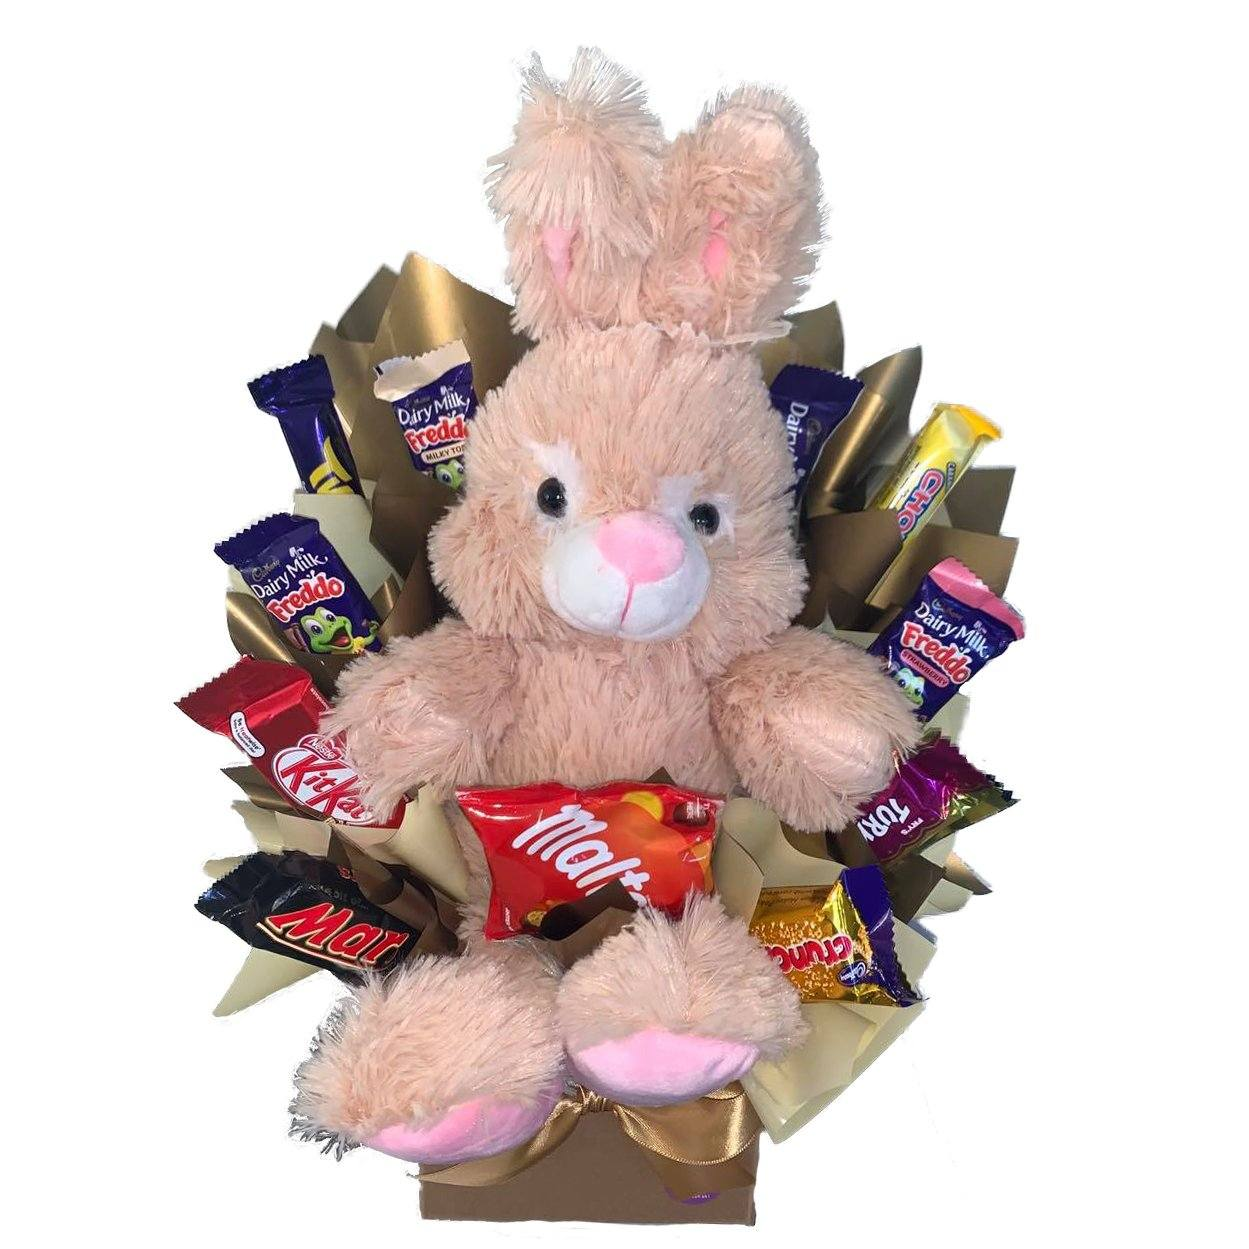 25cm plush bunny sitting in posy box with Nestle and Cadbury chocolates by Lollylicious